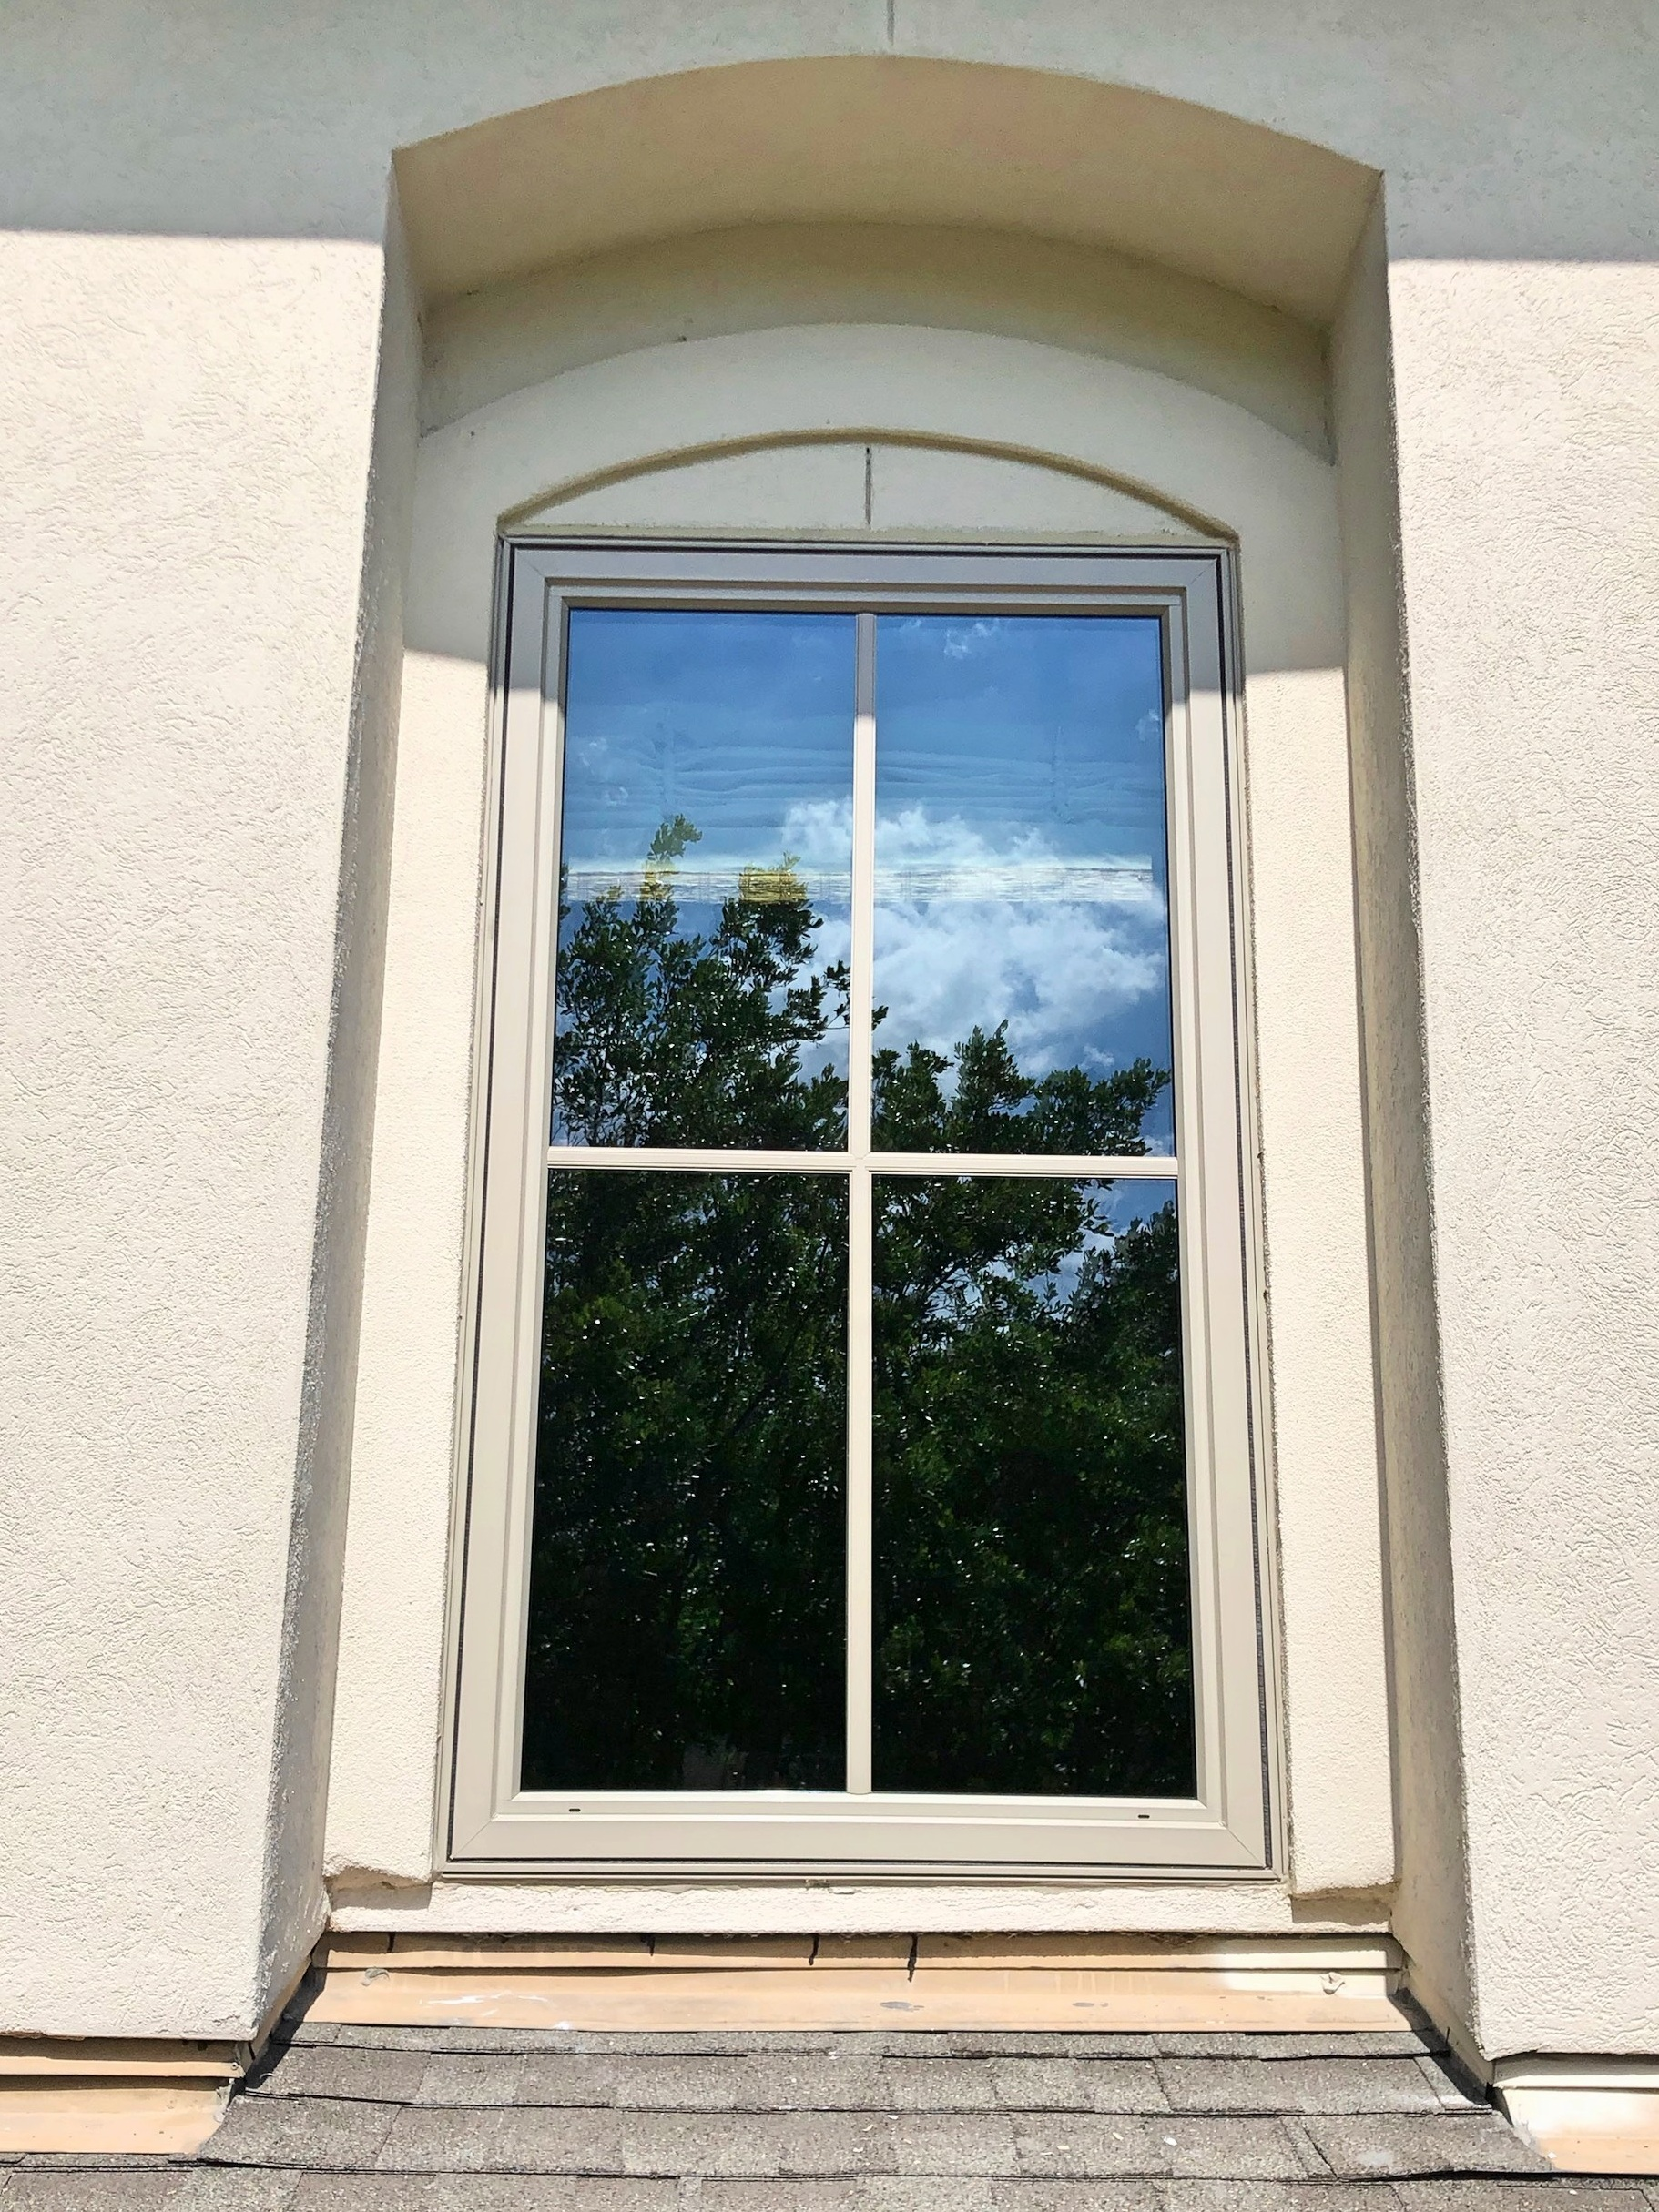 Learn About Our WindowsSee our A+ Reviews -